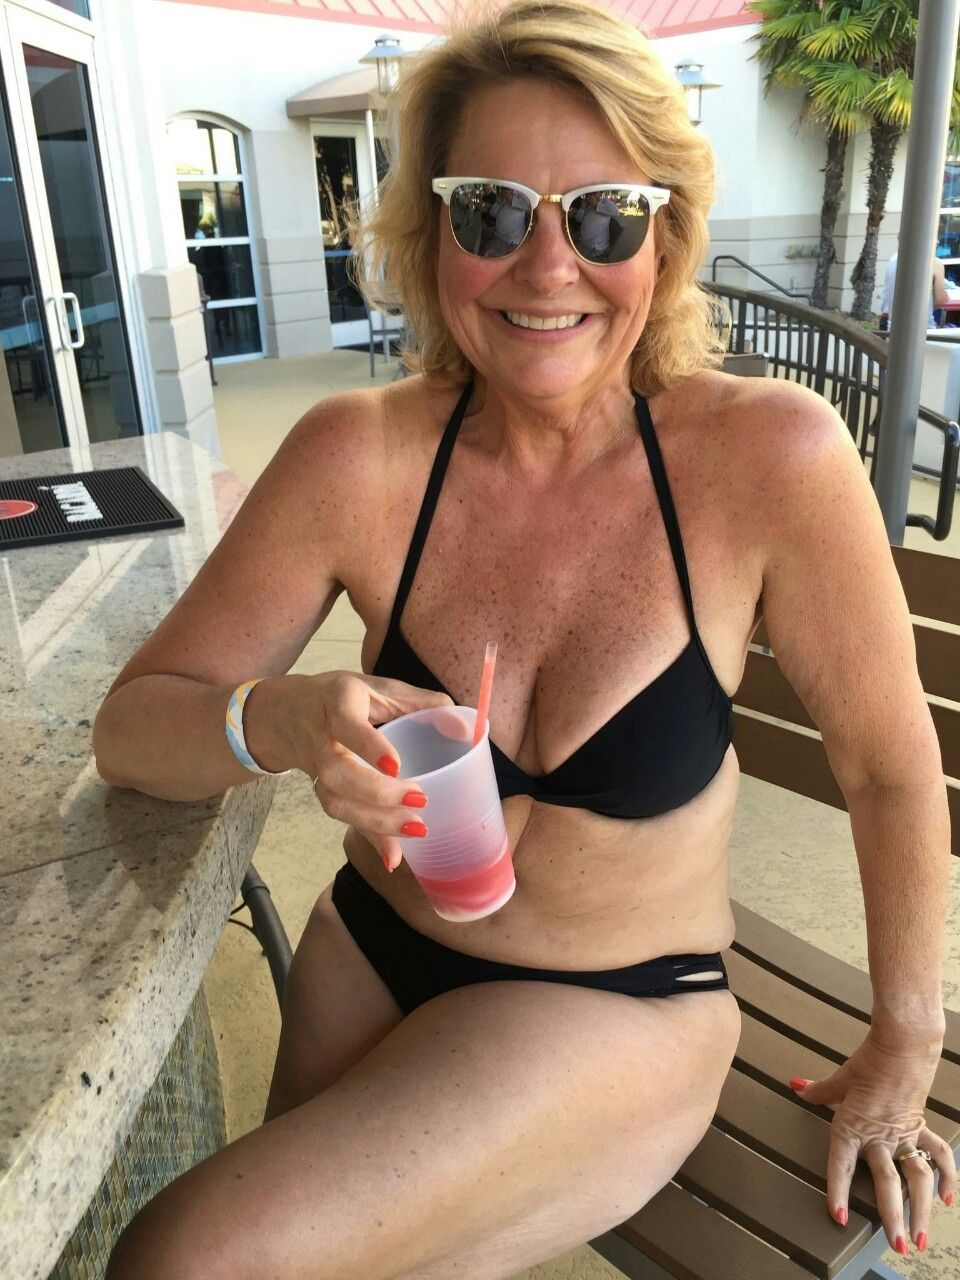 Ordinary moms in swim suits, smack my ass pull my hair